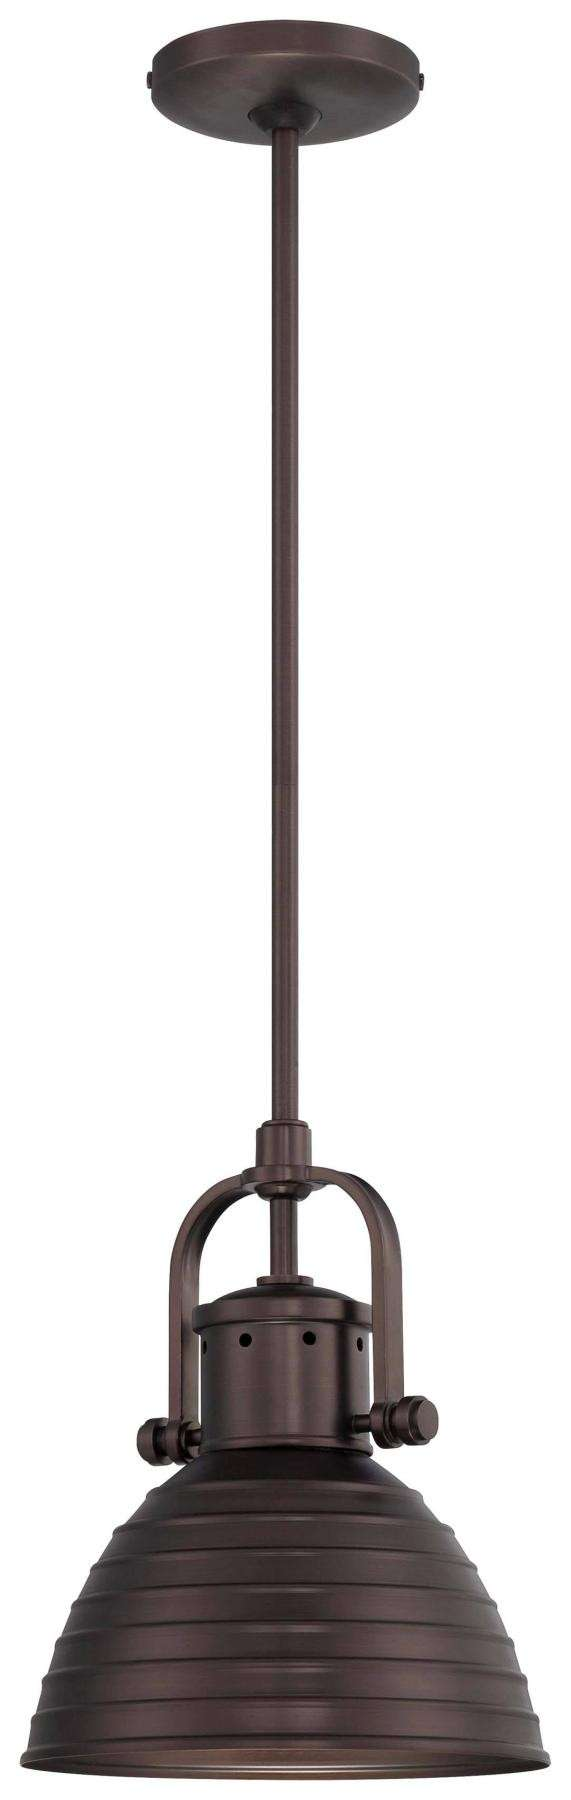 Minka Lavery 1 Light Pendant In Harvard Court Bronze Finish W/ Metal Shade